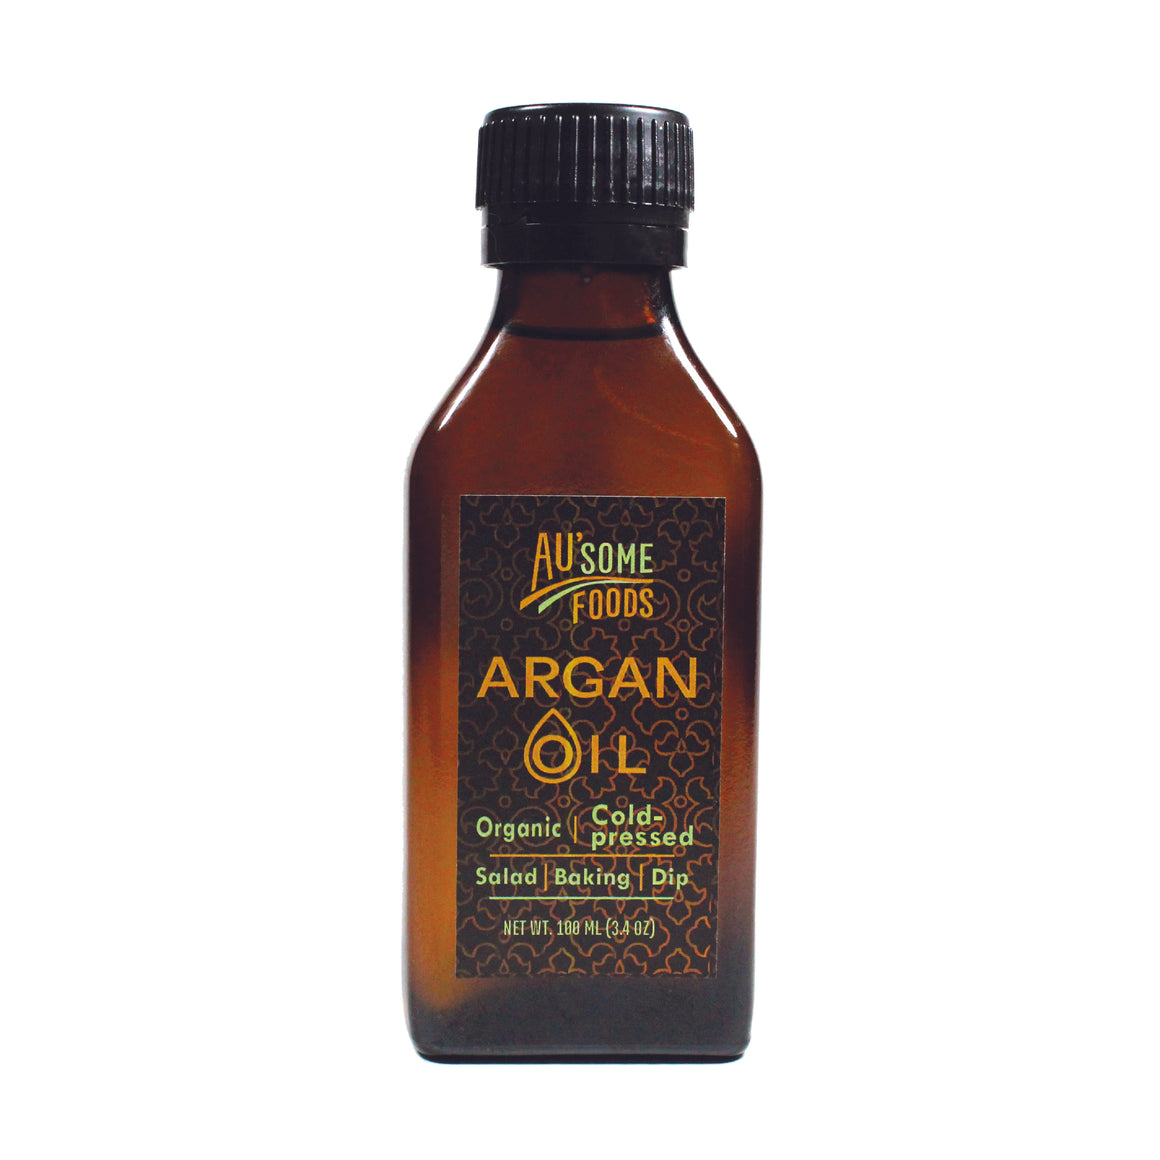 organic cold pressed argan oil. Au'some Foods